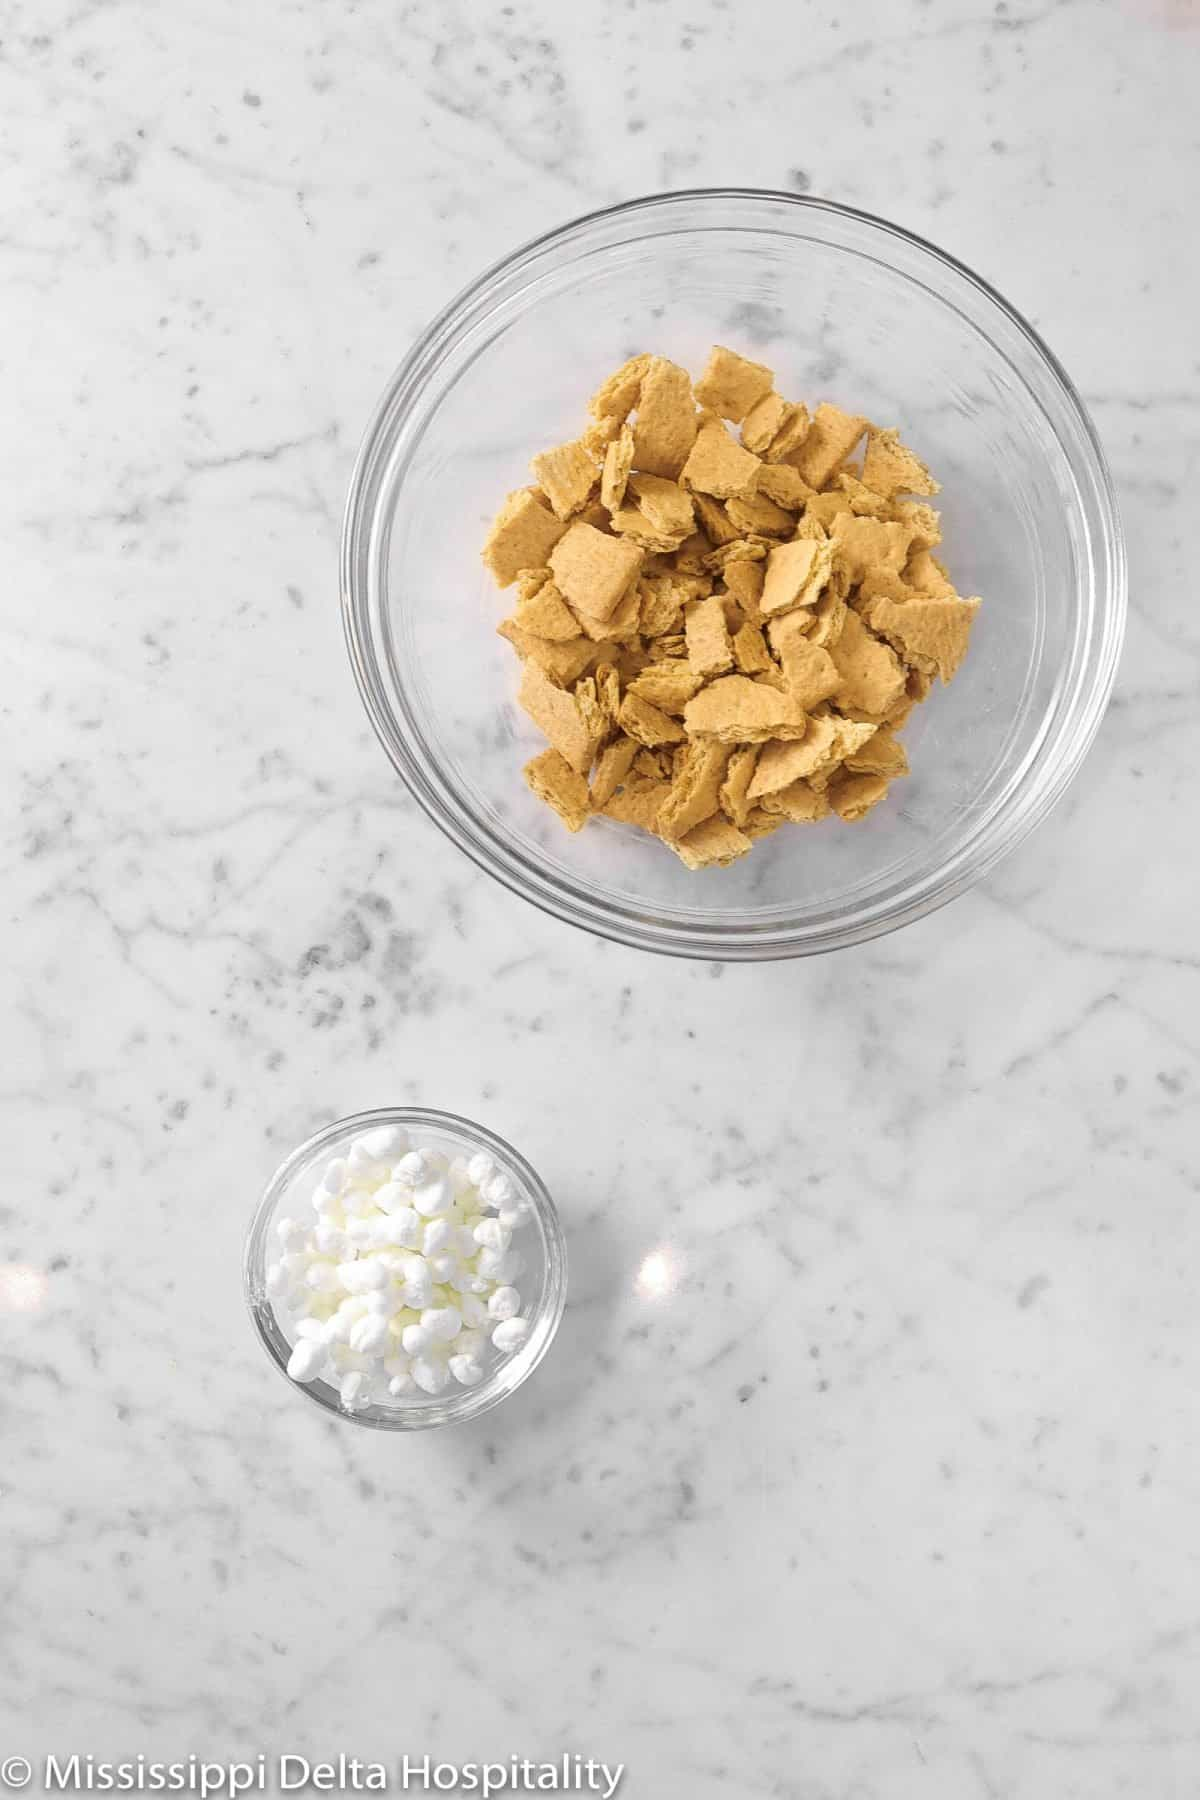 Graham crackers broken up in a small bowl and a small bowl of chopped marshmallows